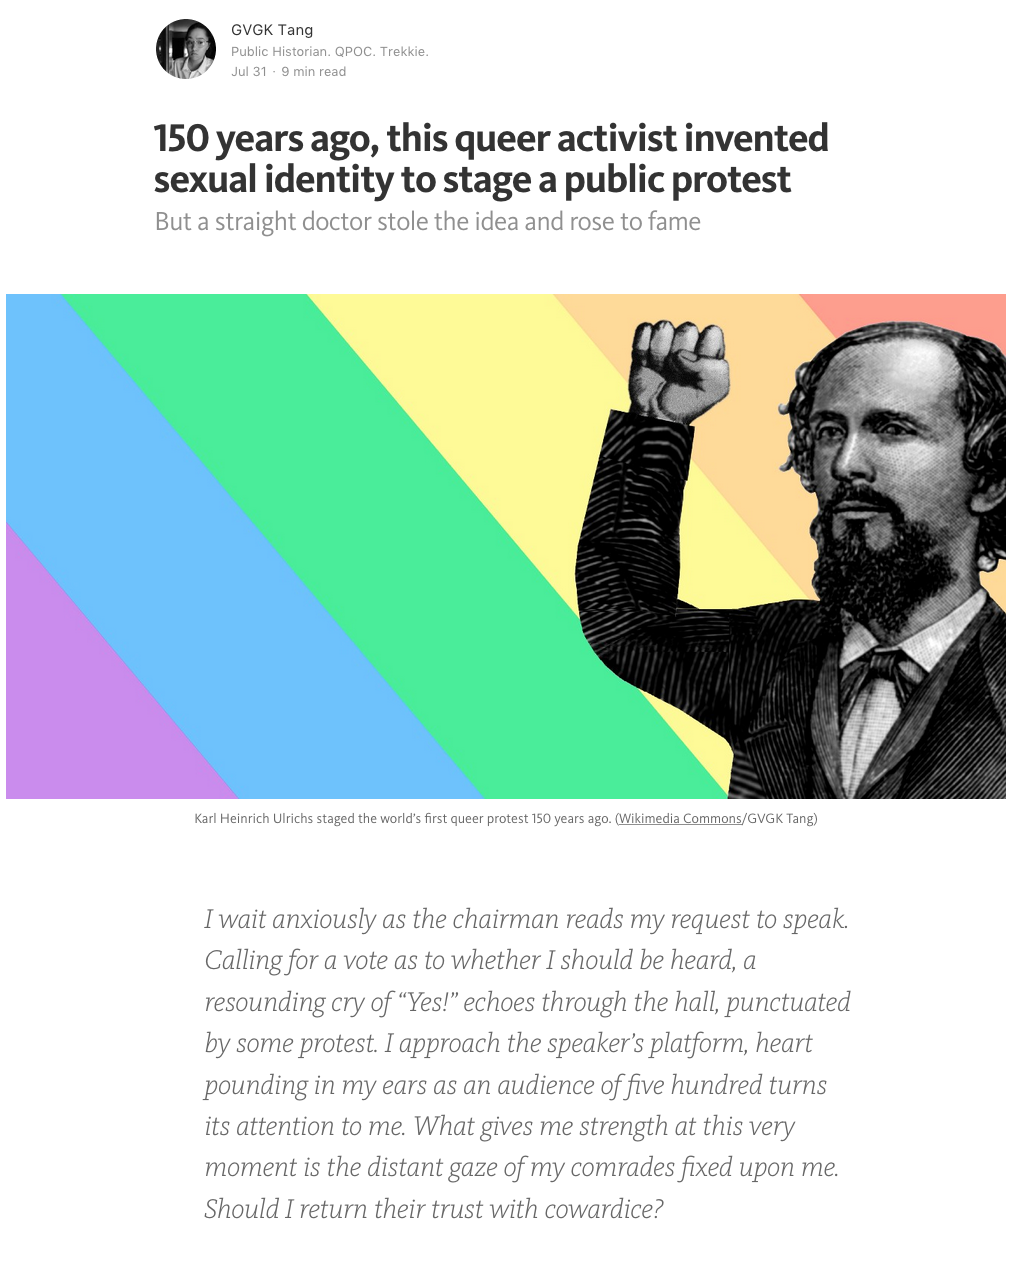 150 years ago, this queer activist invented sexual identity to stage a public protest. But a straight doctor stole the idea and rose to fame.